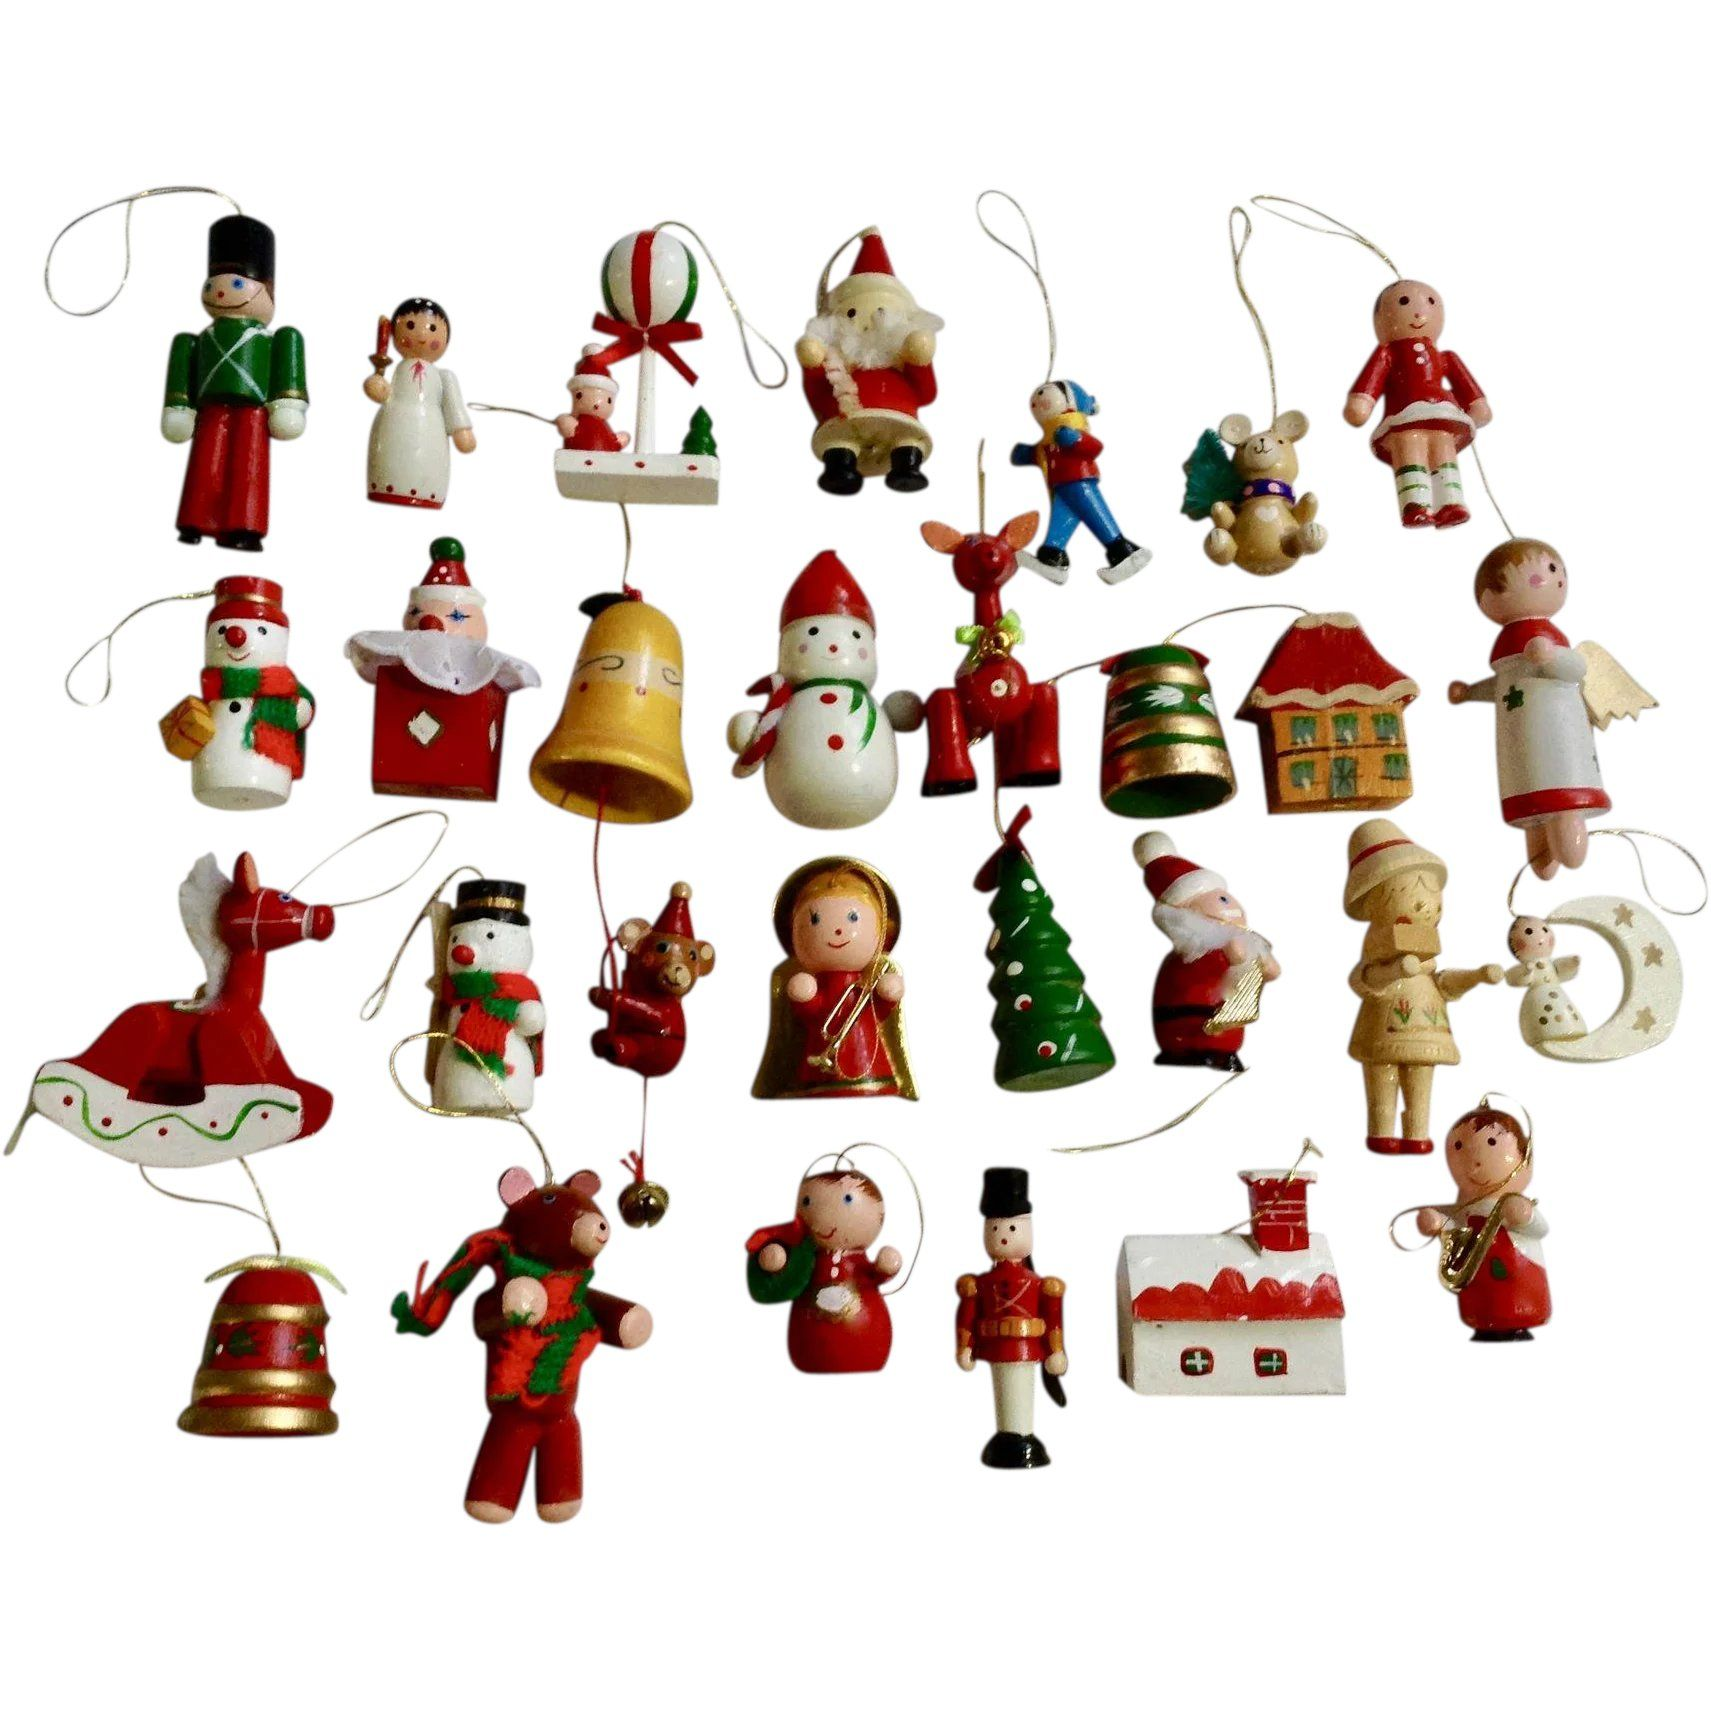 Vintage Wooden Christmas Tree Ornaments And Decorations Angels Horses Santa Re Christmas Tree Ornaments Vintage Unique Christmas Trees Christmas Tree Ornaments